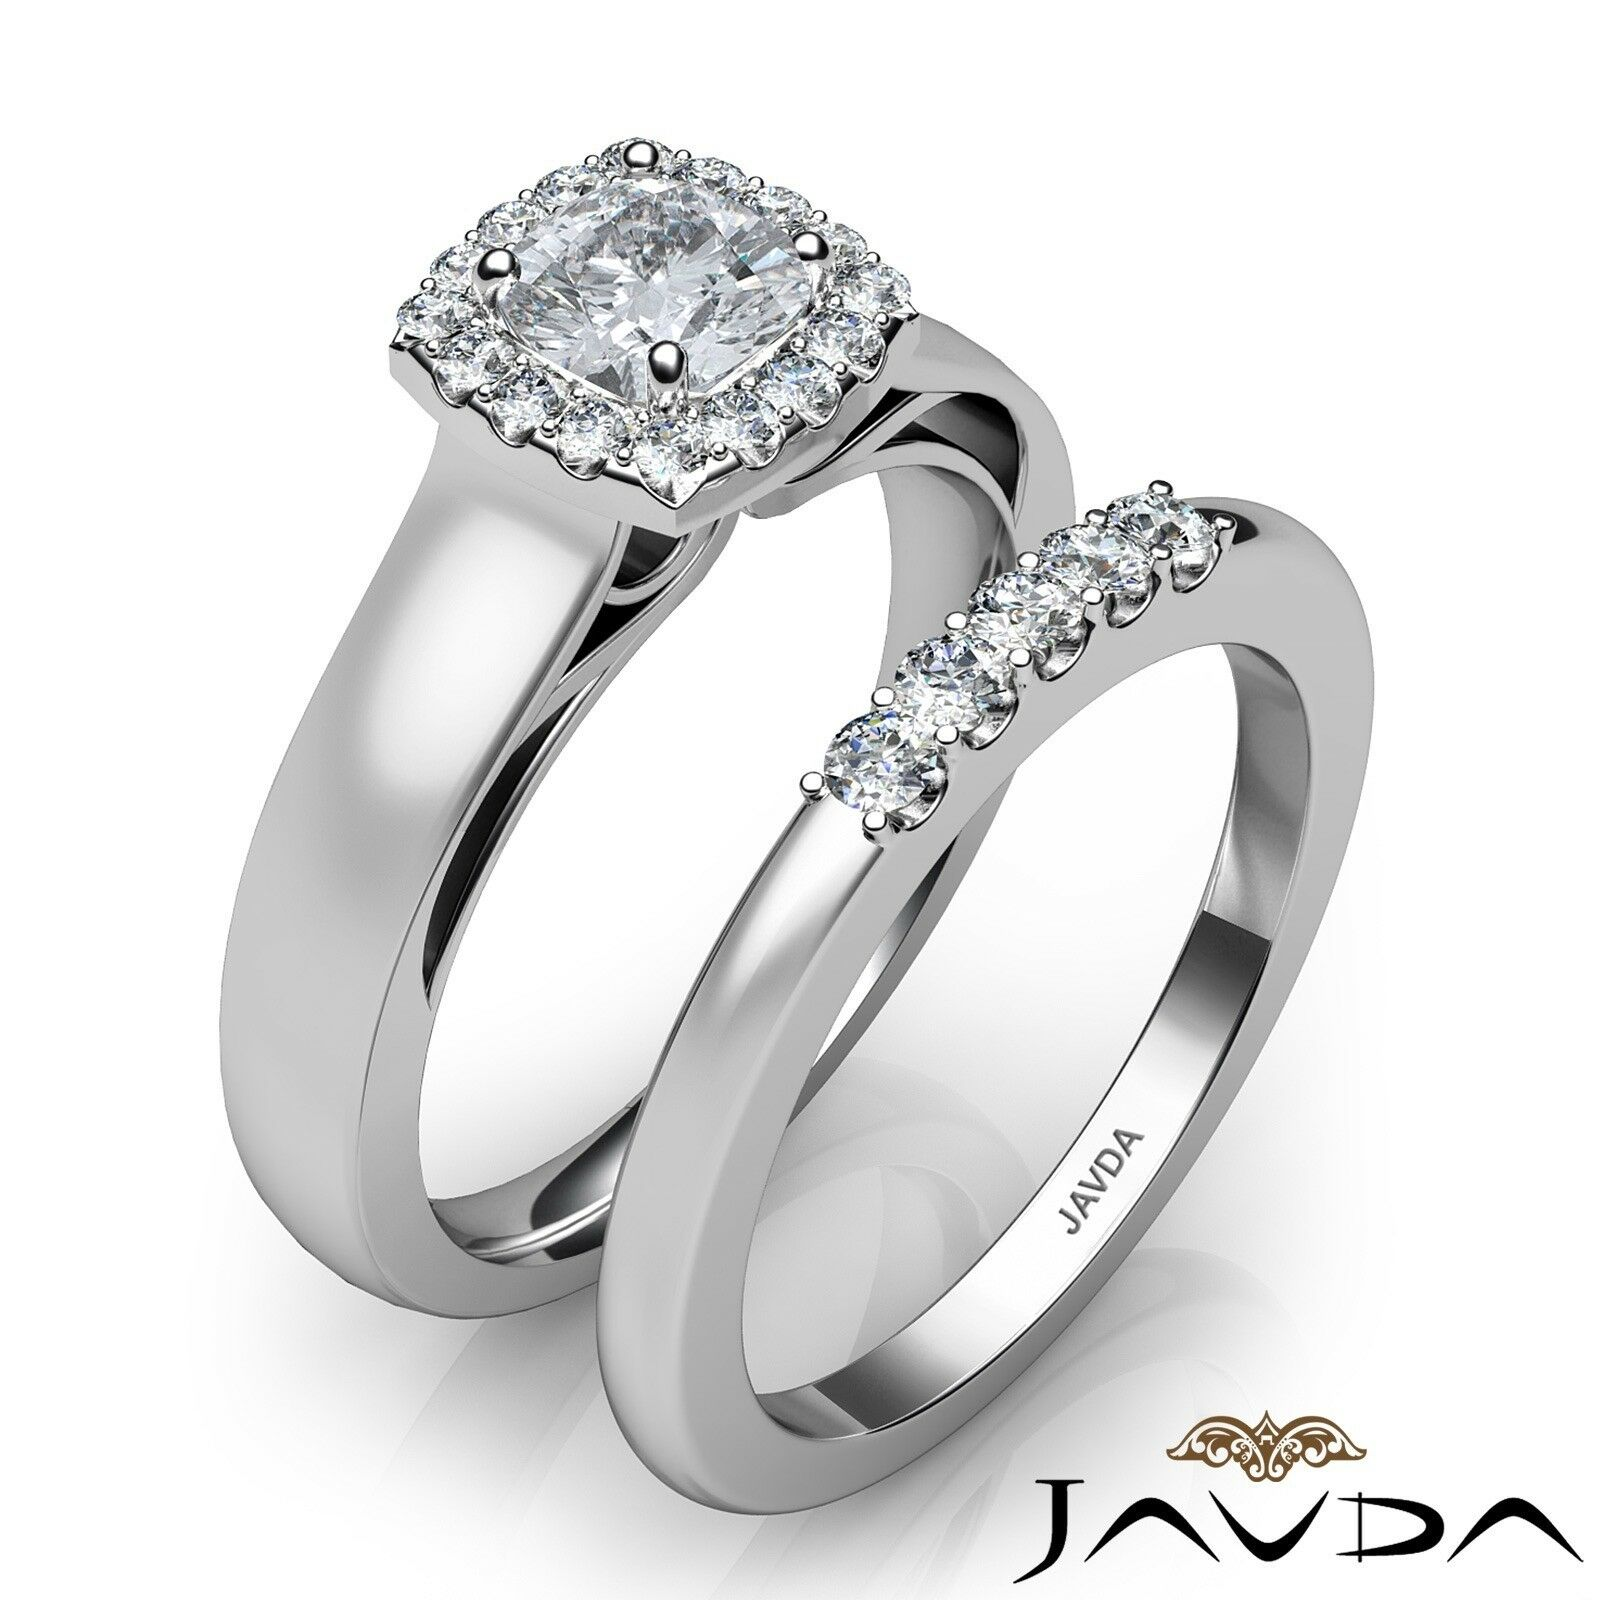 1.04ctw Solitaire Halo Bridal Cushion Diamond Engagement Ring GIA H-VS2 W Gold 2